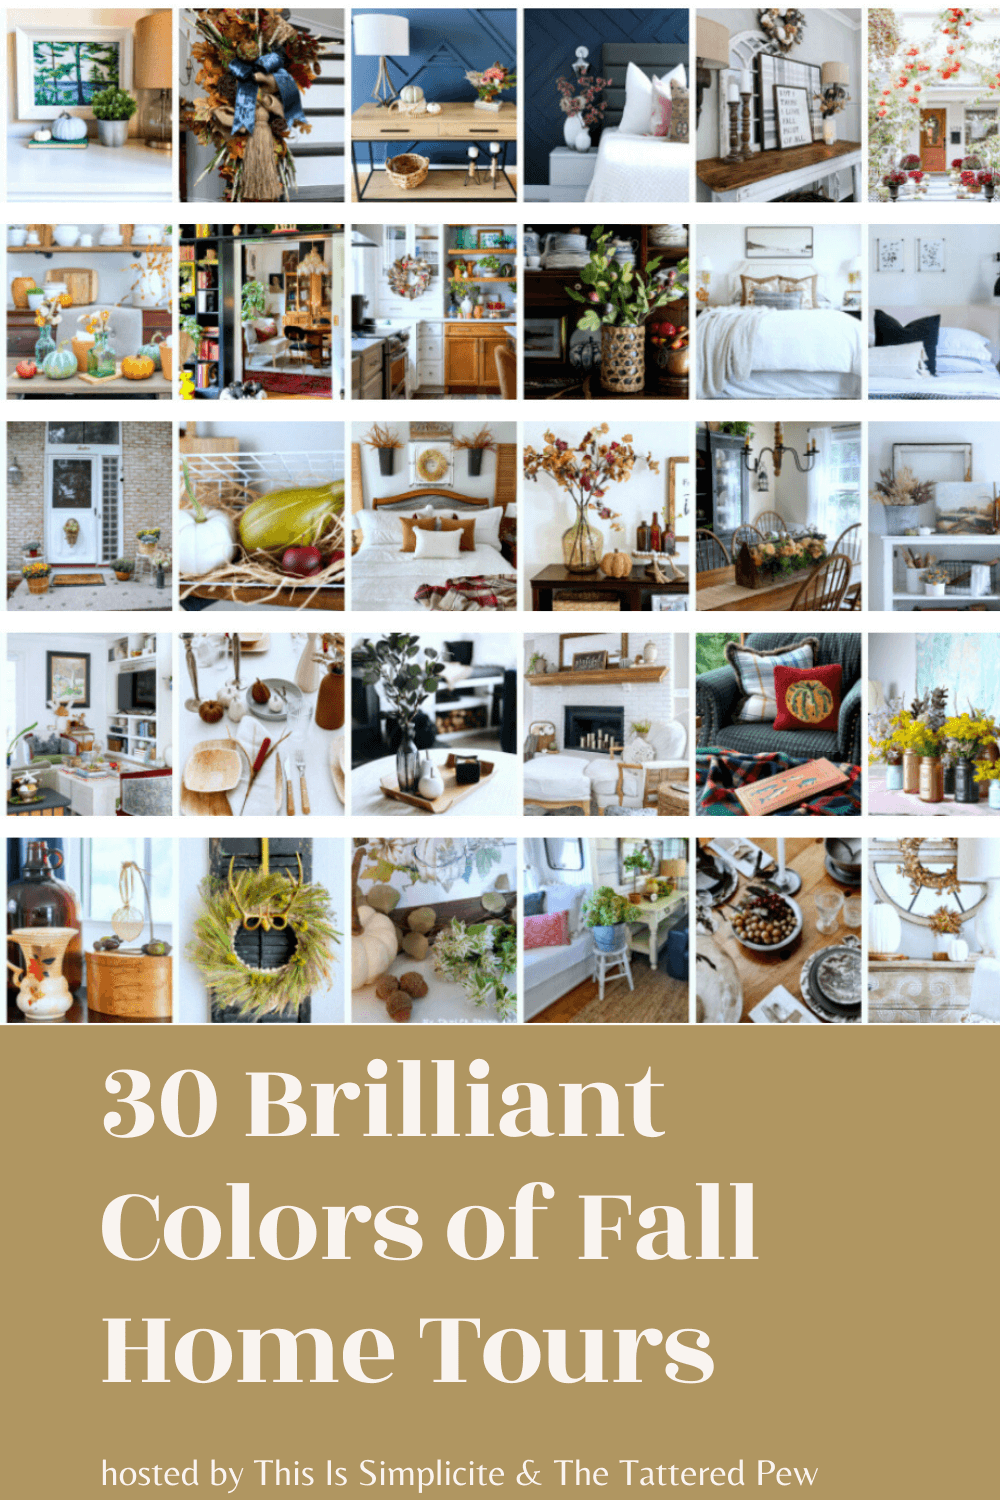 30 Brilliant Colors of Fall Home Tours